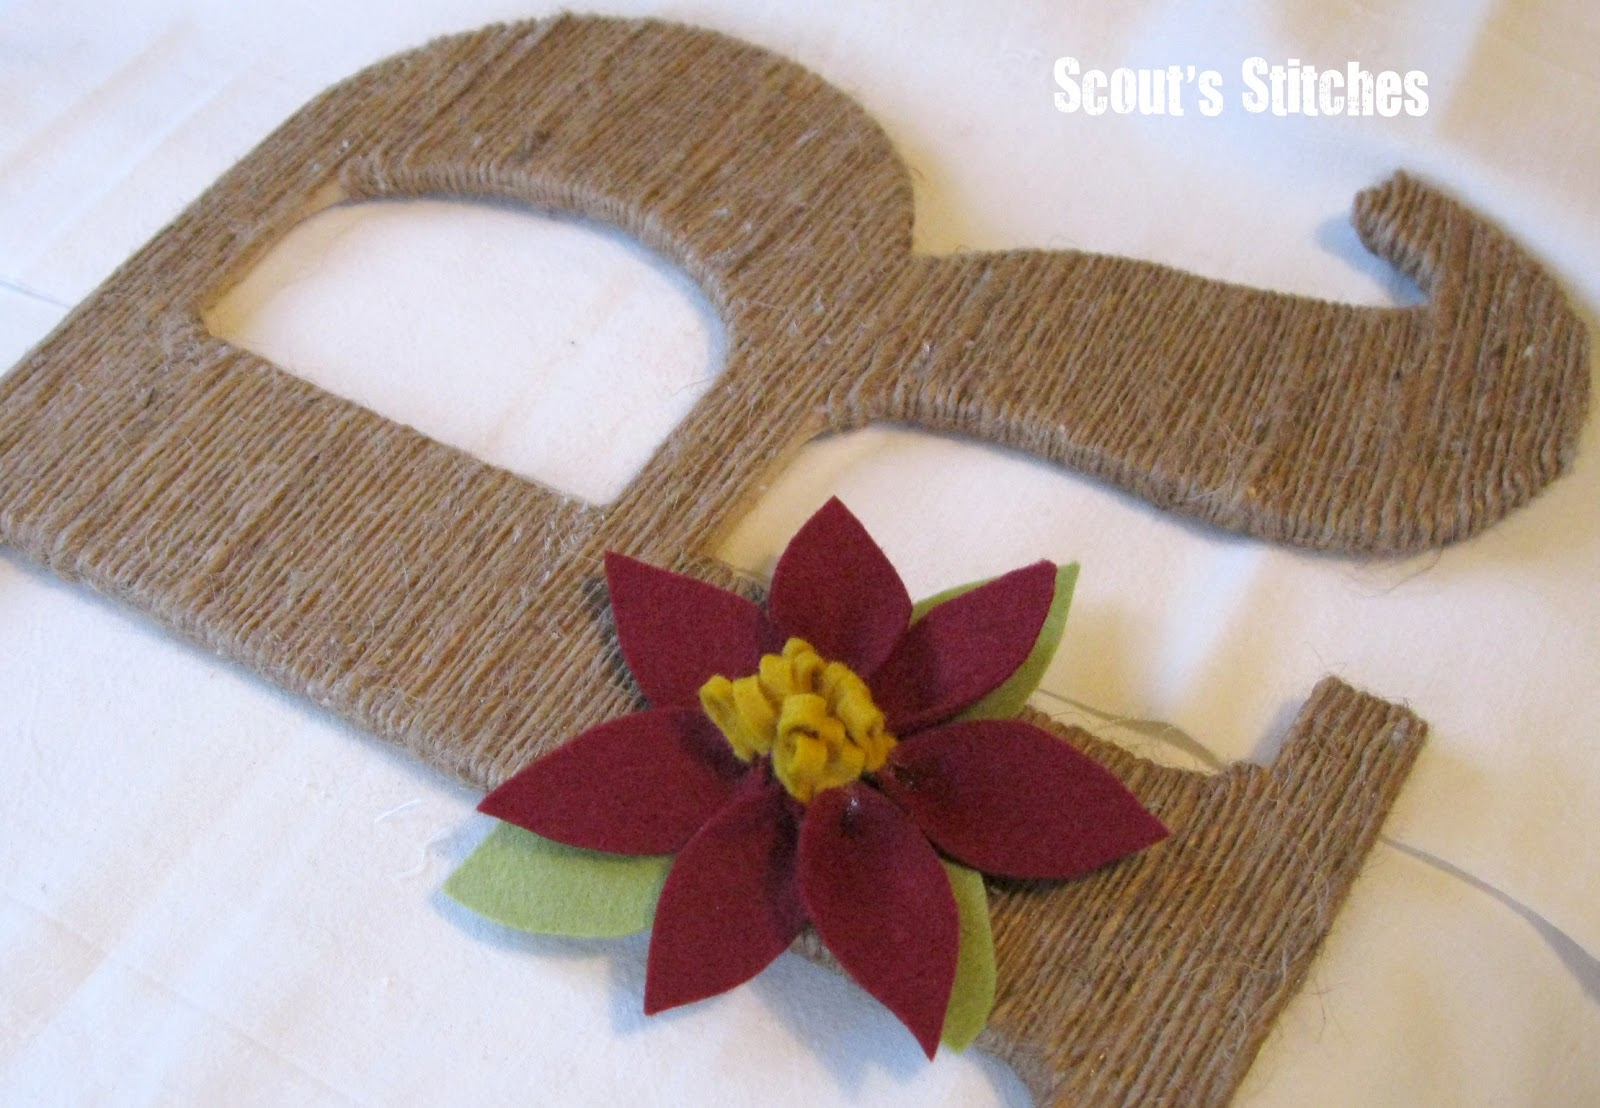 Scout S Stitches Diy Jute Wrapped Letter With Flower Accent White